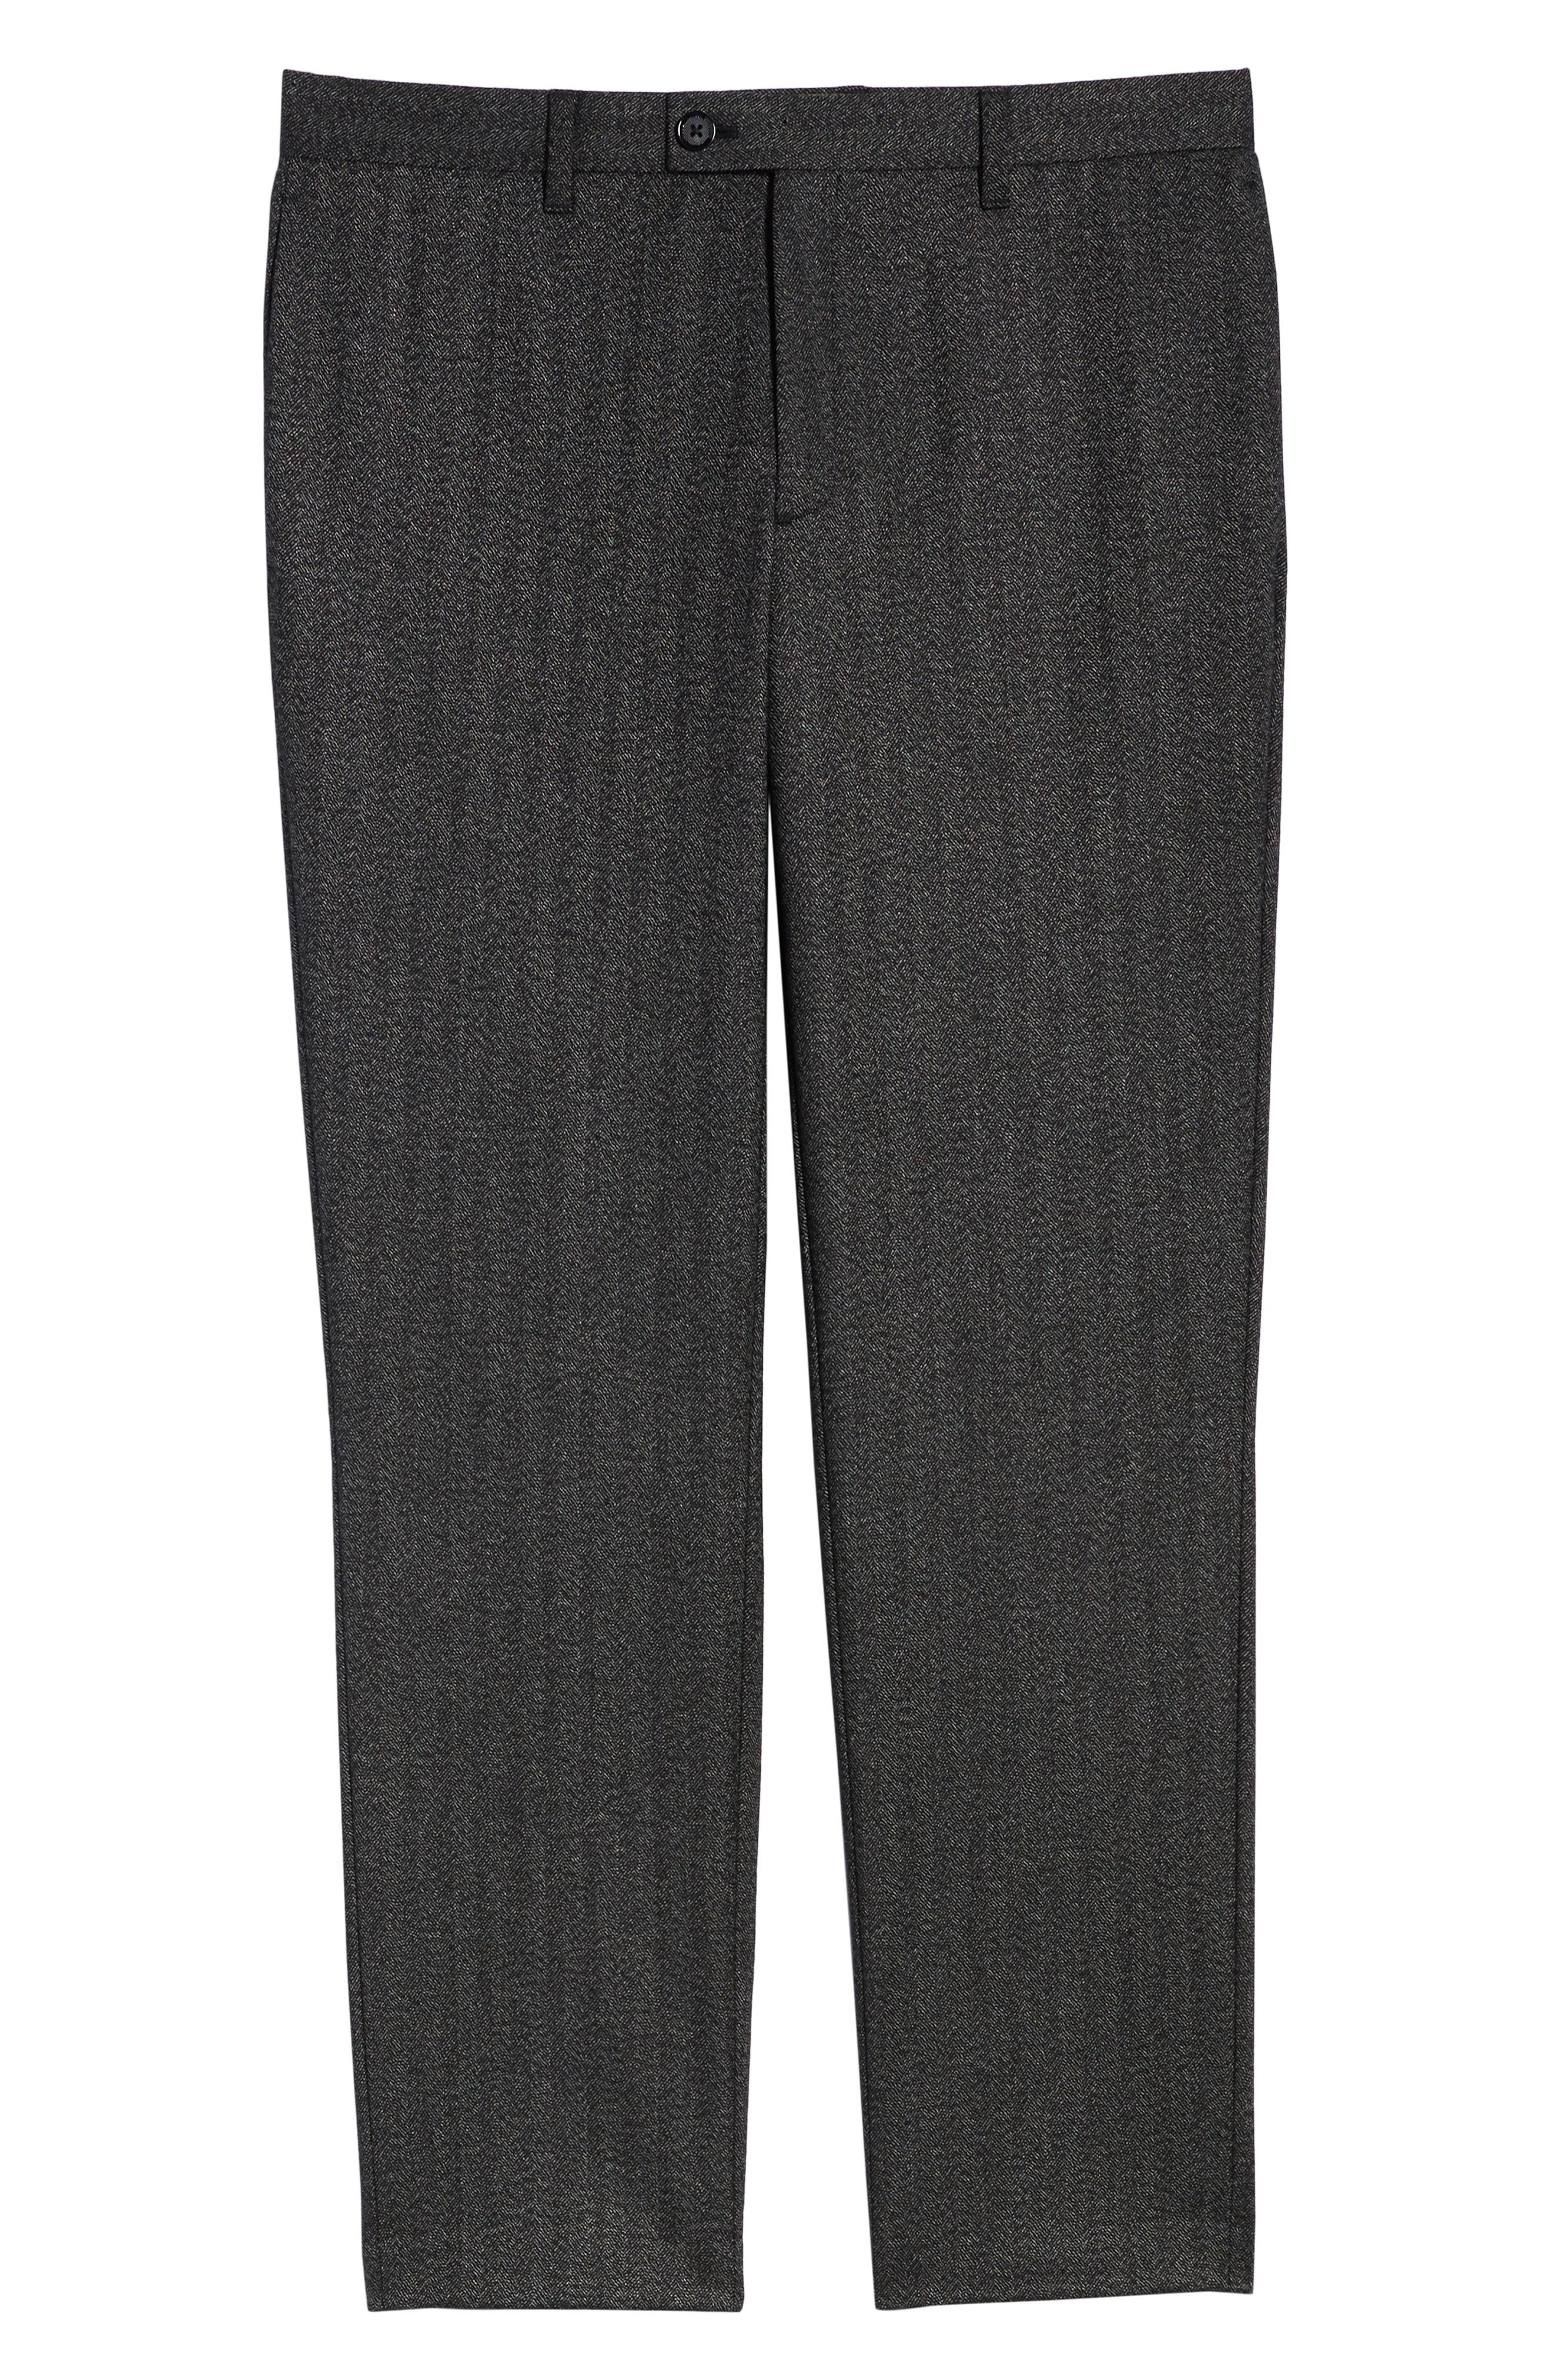 Wenstro Classic Fit Trousers,                             Alternate thumbnail 6, color,                             020